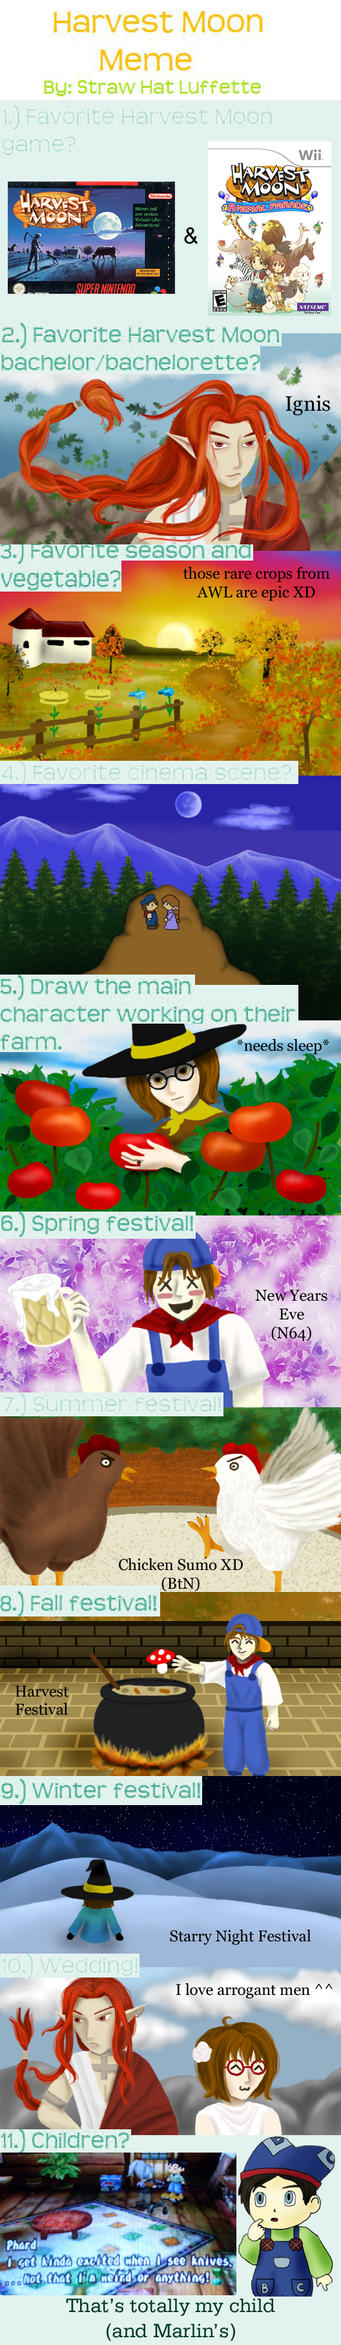 harvest_moon_meme_by_indiliel d5j88zs harvest moon memes on harvest moon cafe deviantart,Harvest Moon Meme